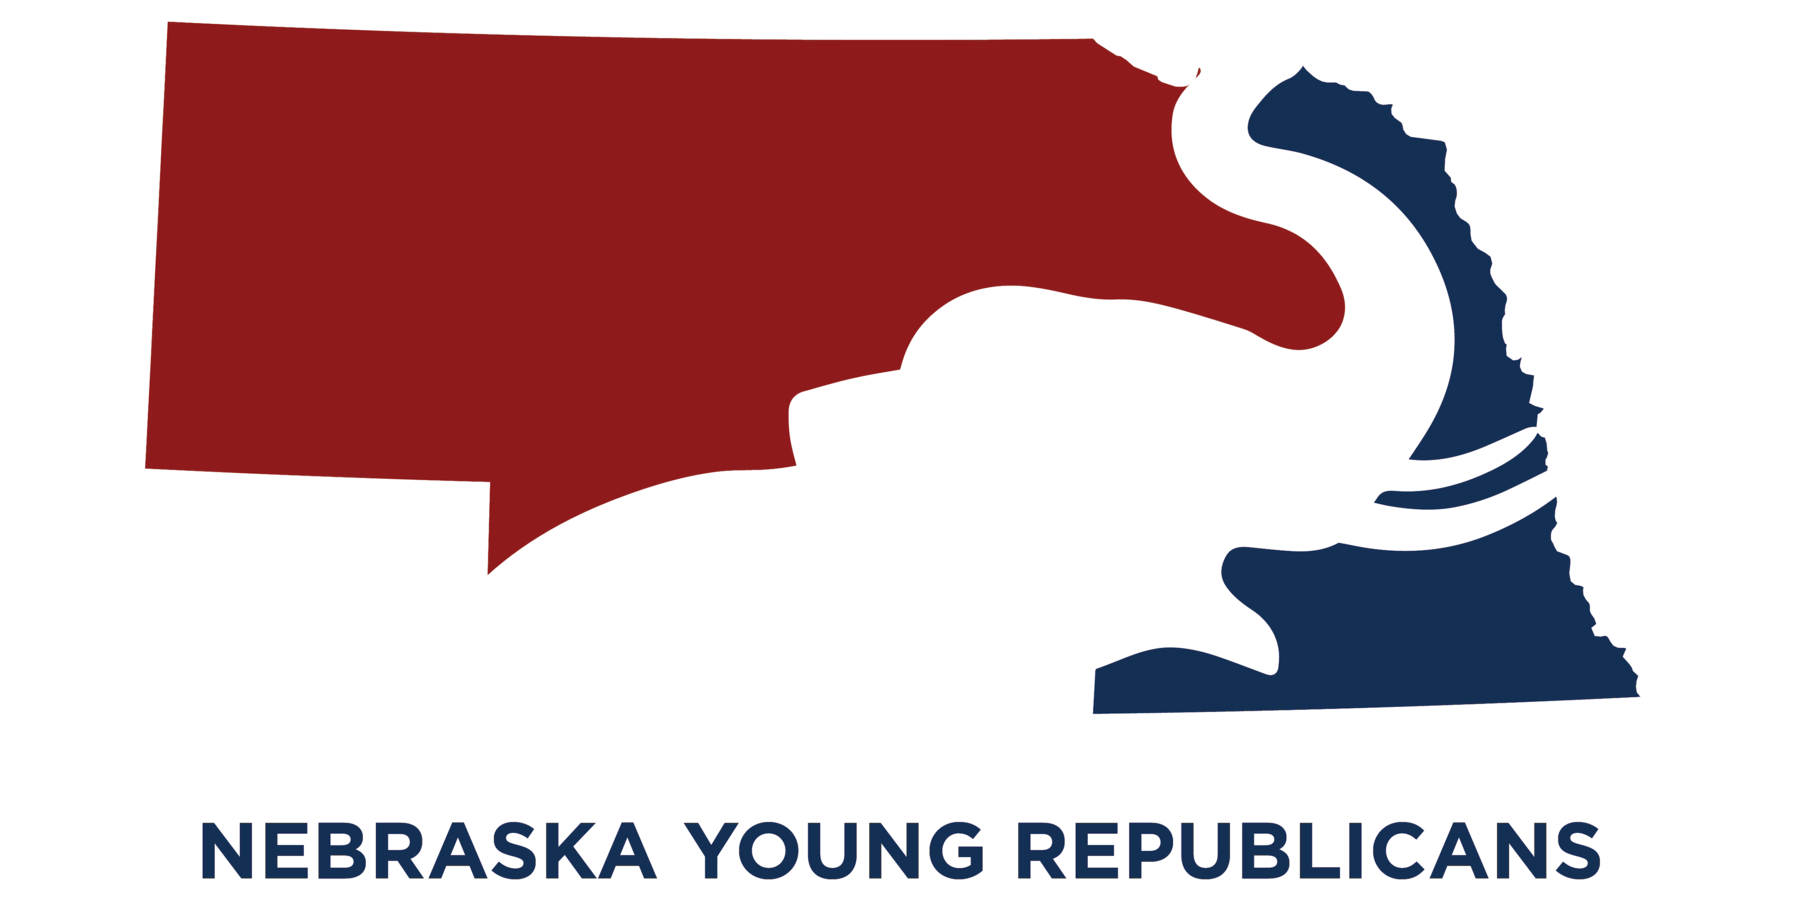 Nebraska Young Republicans: Join the Nebraska Young Republicans